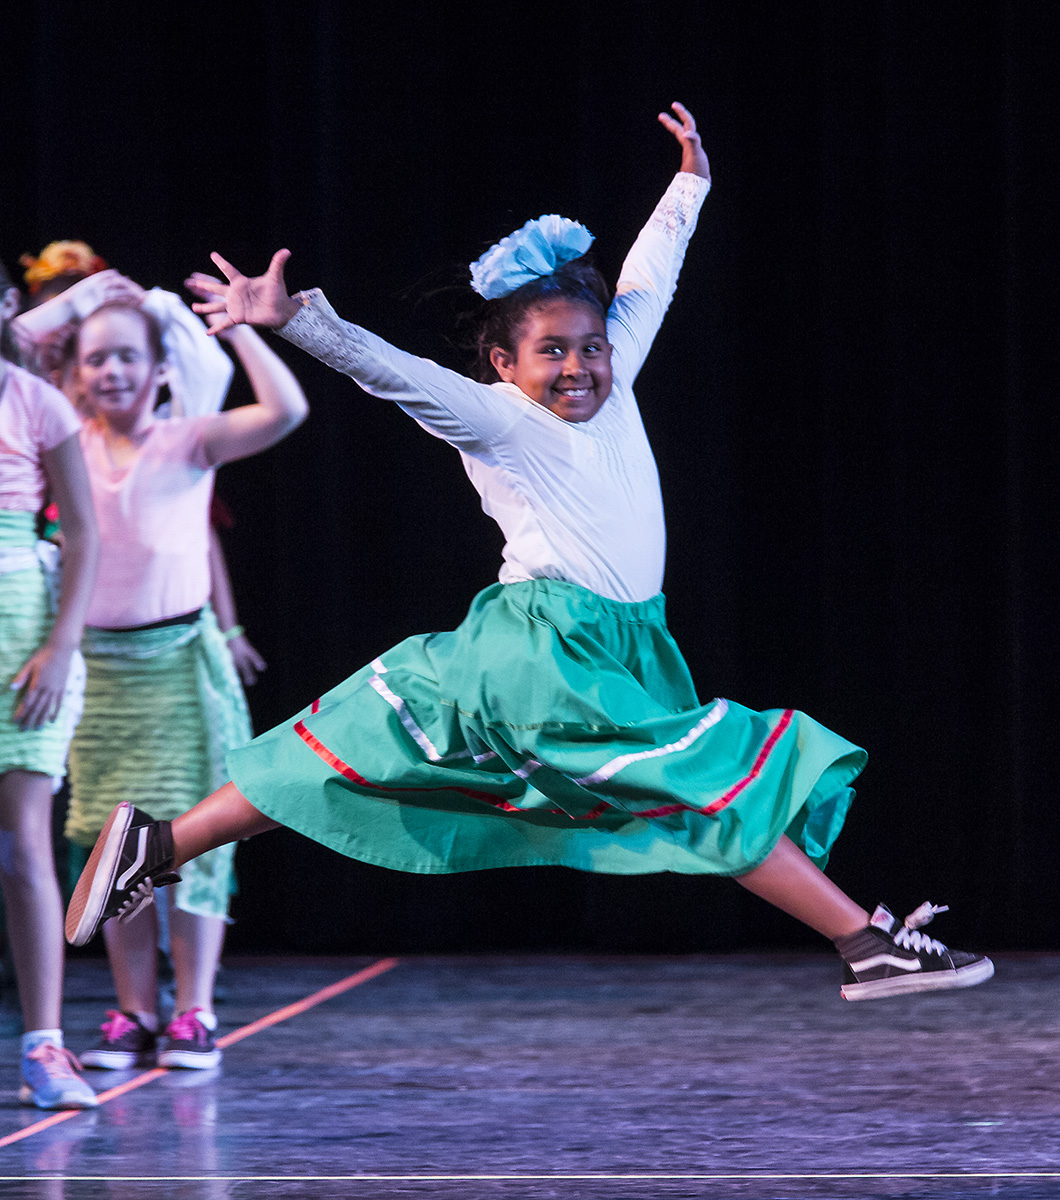 What we do - During and after school, our Teaching Artists serve entire grades, or an entire school. Through creative exploration, improvisation, composition, and presentation students develop an understanding of dance and choreography.   Students also learn dances that involve movements and patterns that develop their minds and bodies at their developmental stage in life.  The Teaching Artists are not only professional dancers, choreographers, musicians and composers, but they are all trained in teaching In-school educational dance programs.Learn more